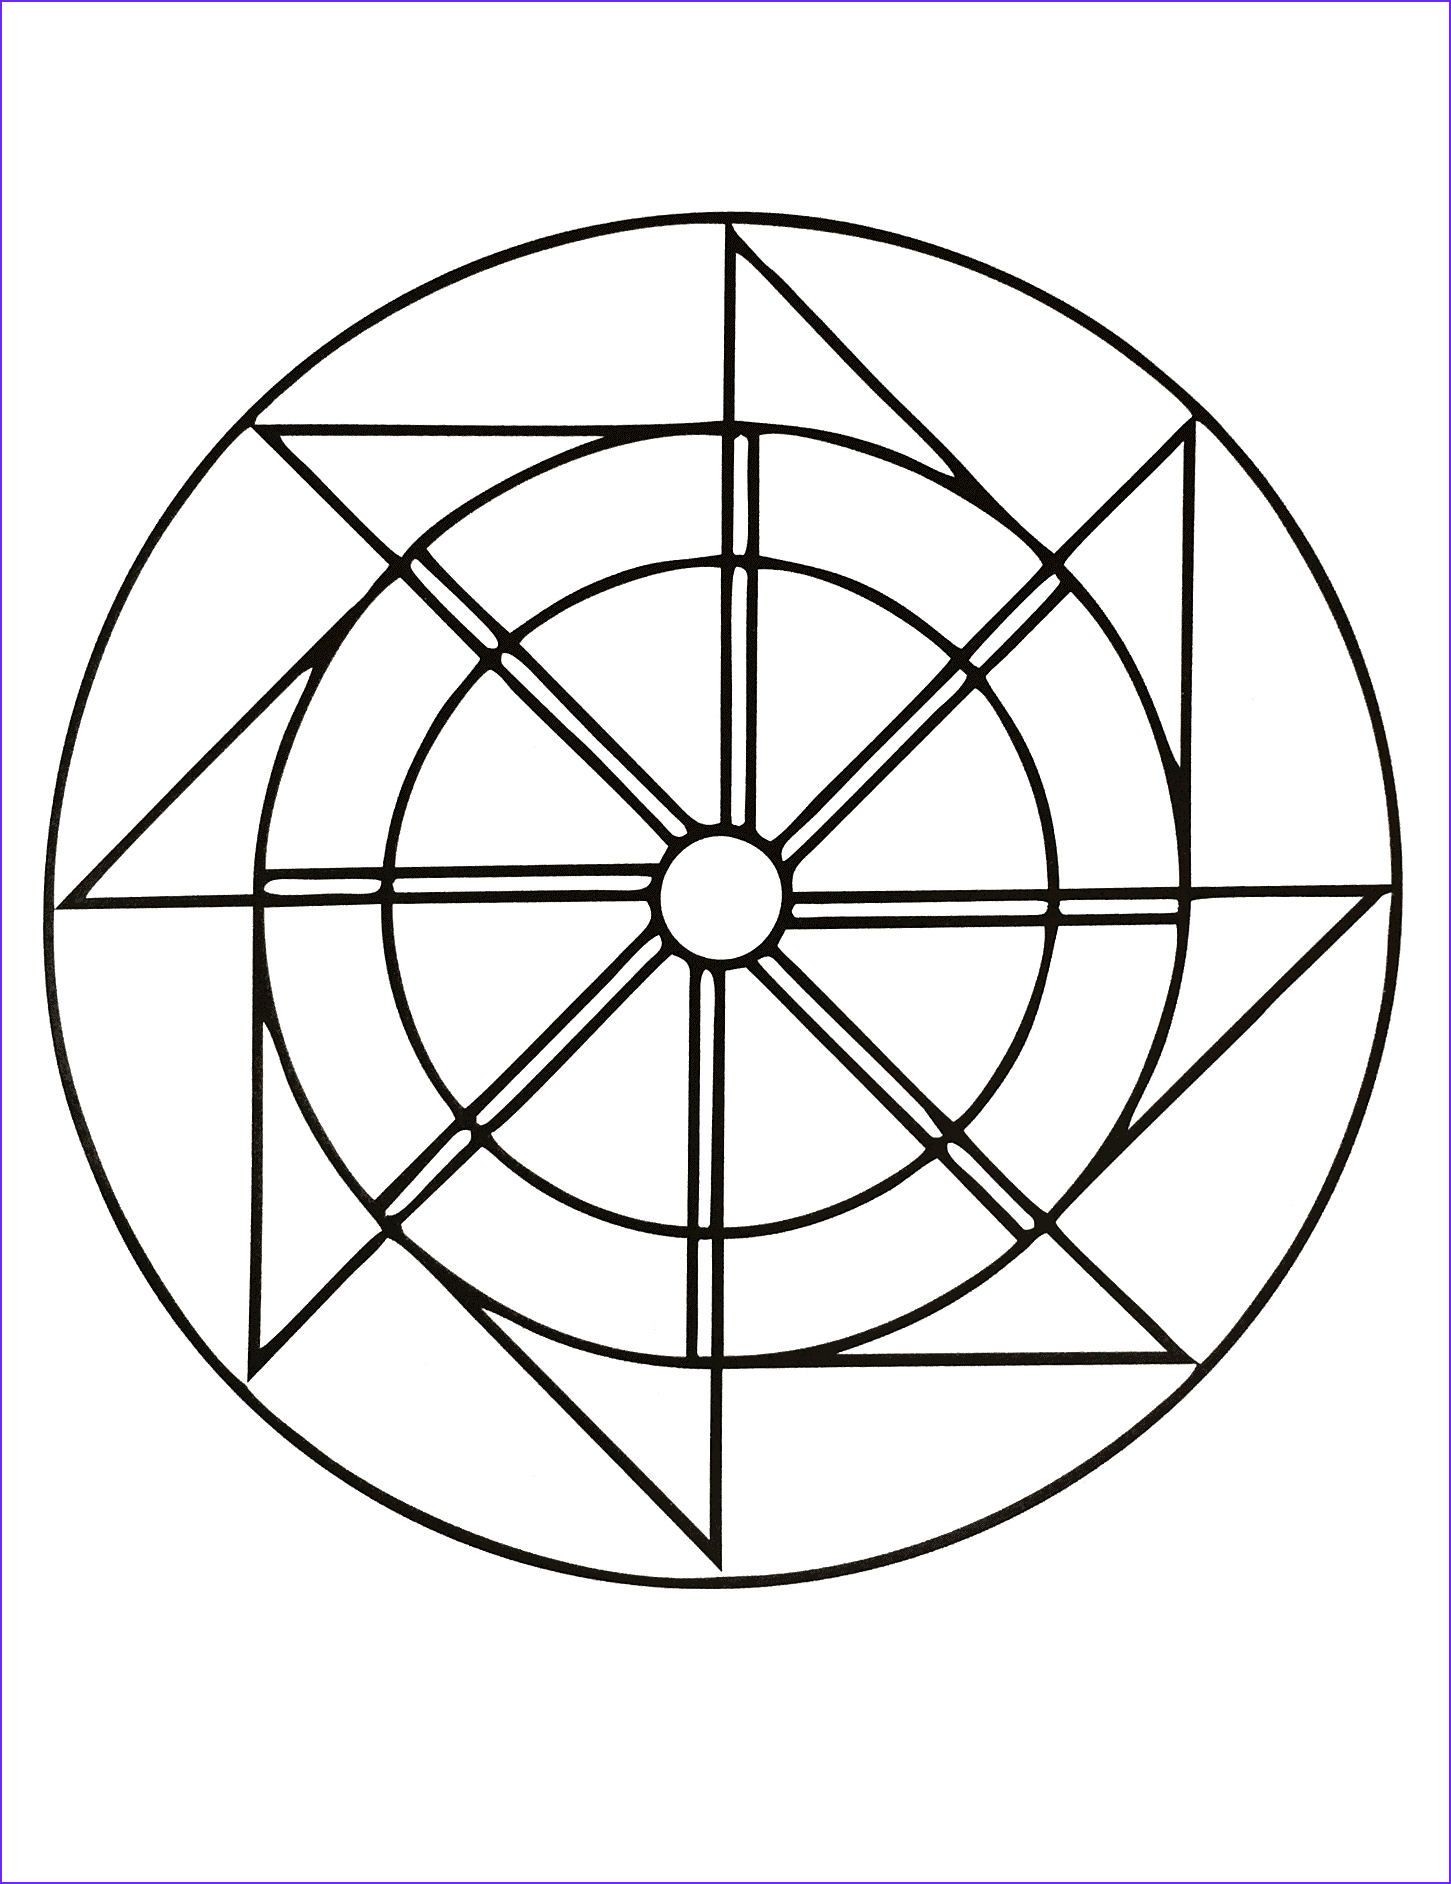 Simple Mandala Coloring Pages New Gallery Free Printable Mandalas for Kids Best Coloring Pages for